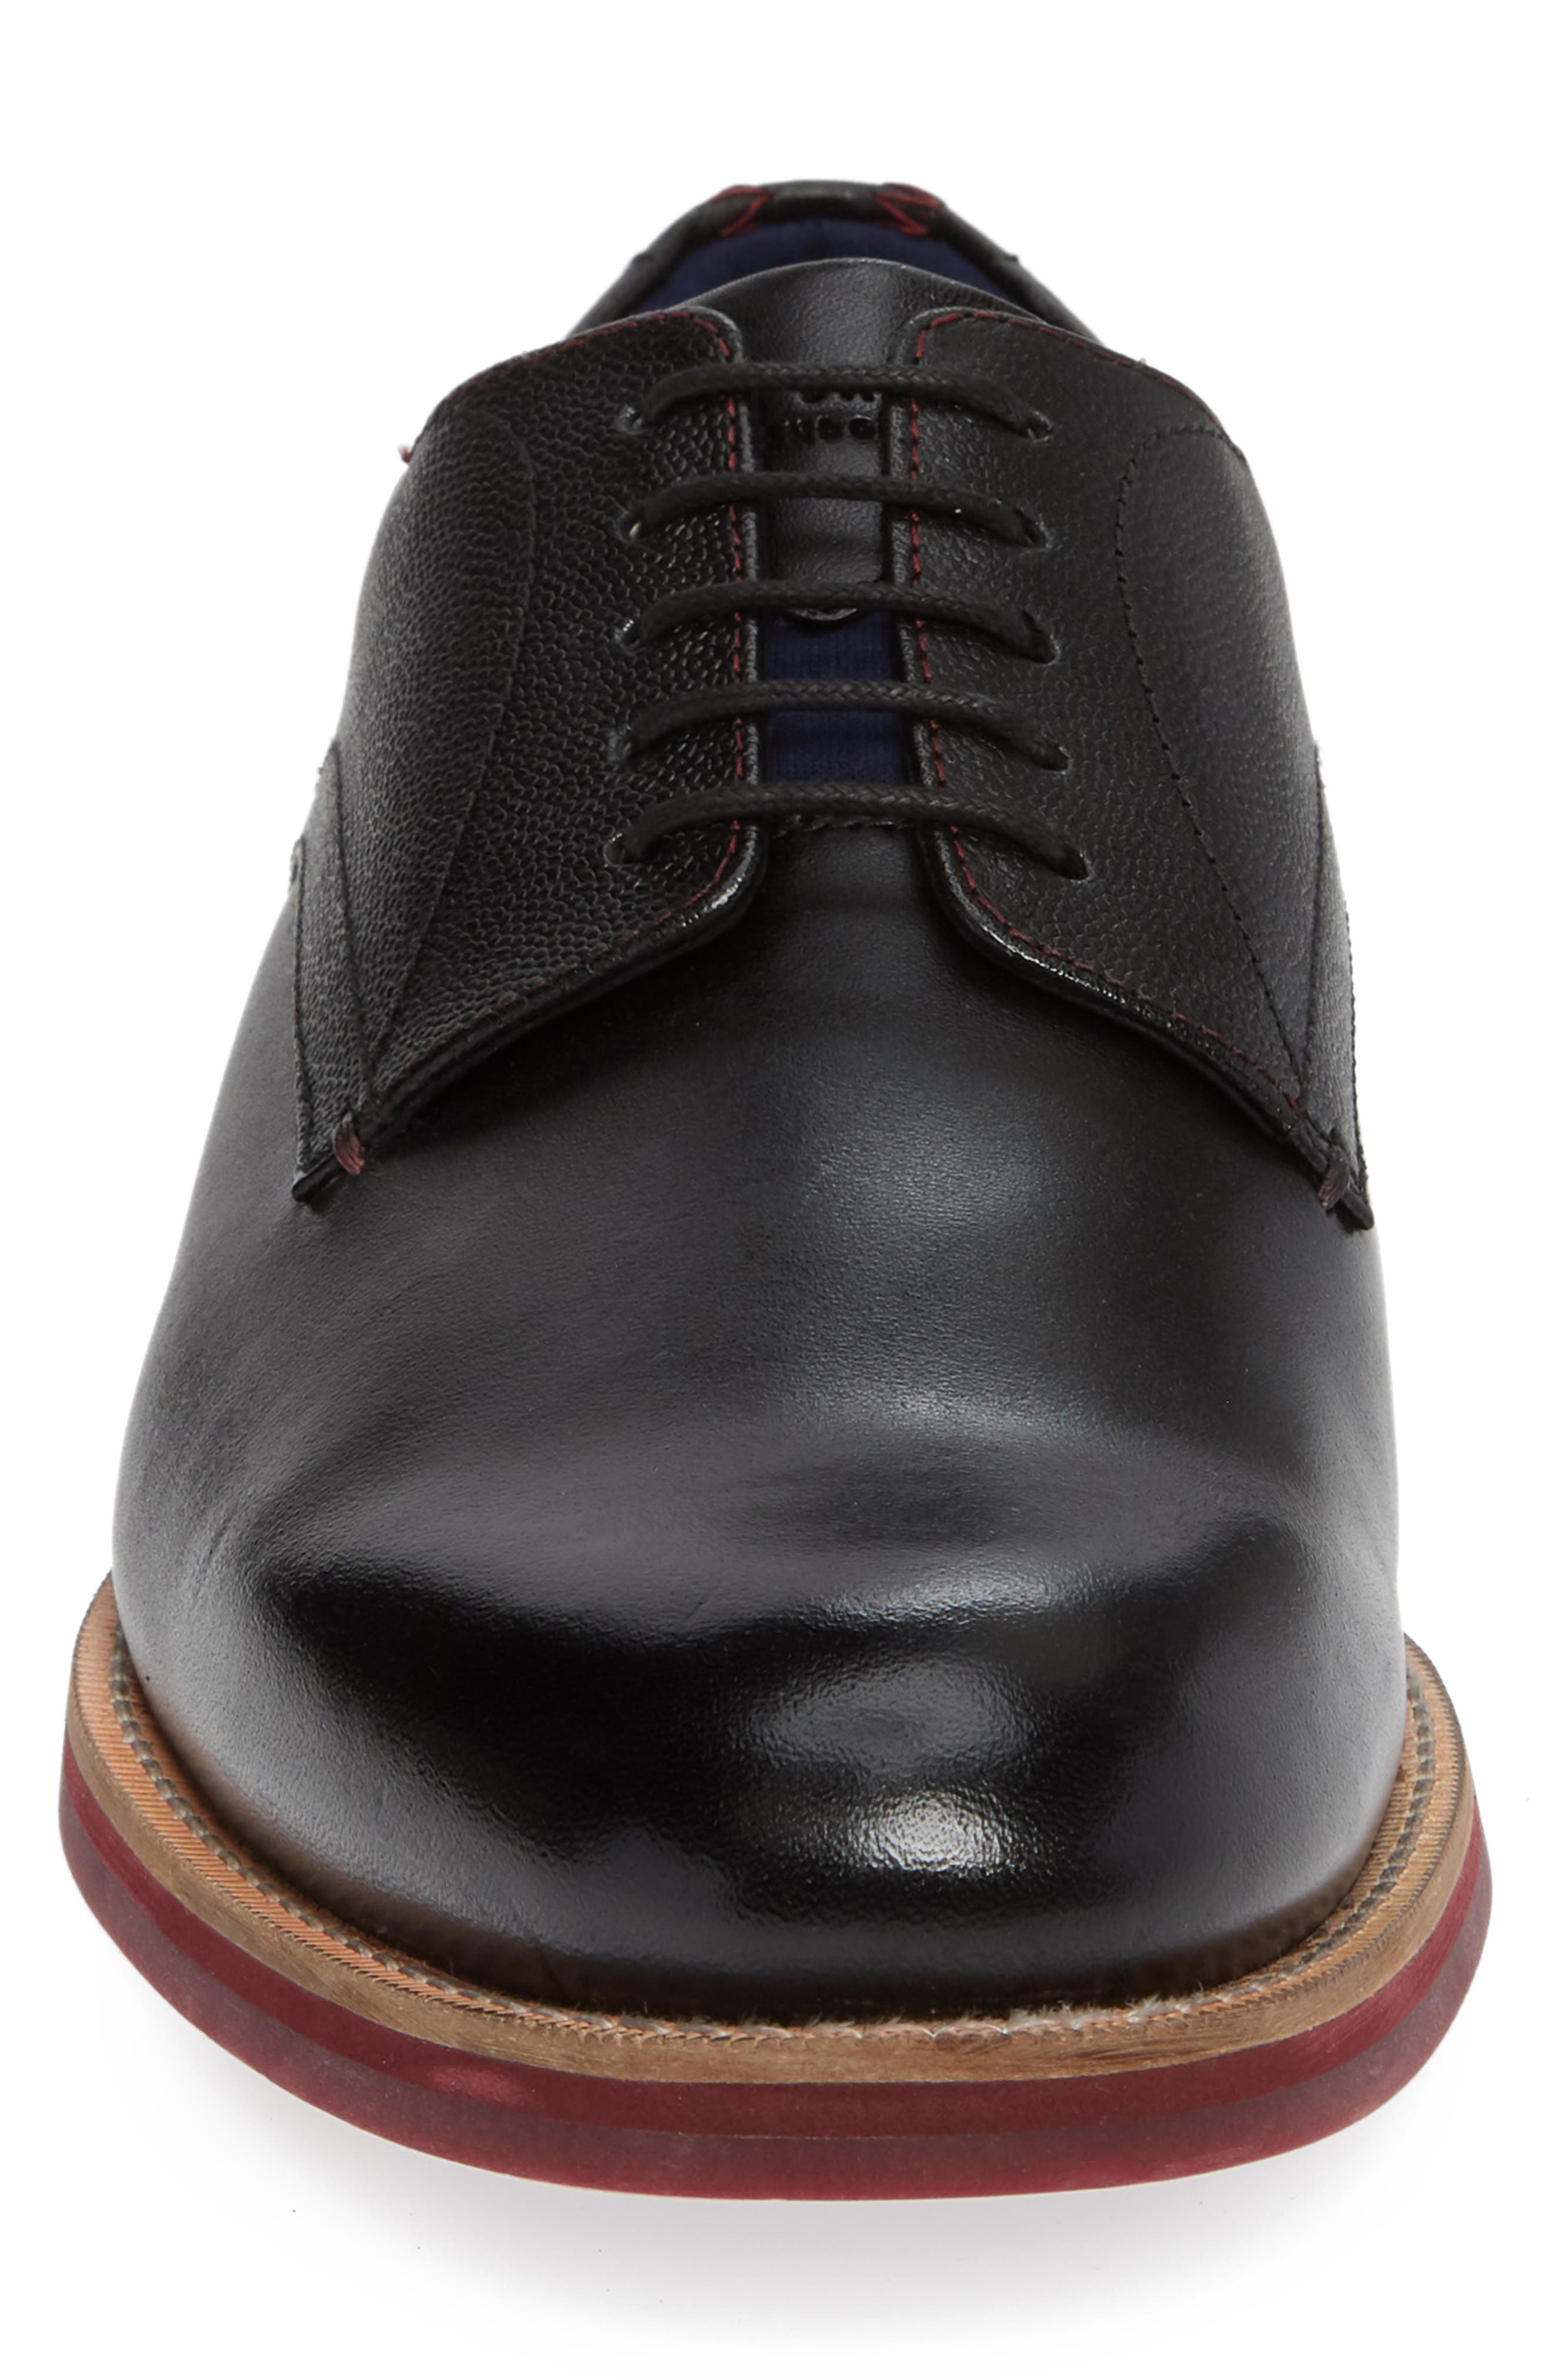 Jhorge Plain Toe Derby,                             Alternate thumbnail 4, color,                             BLACK LEATHER